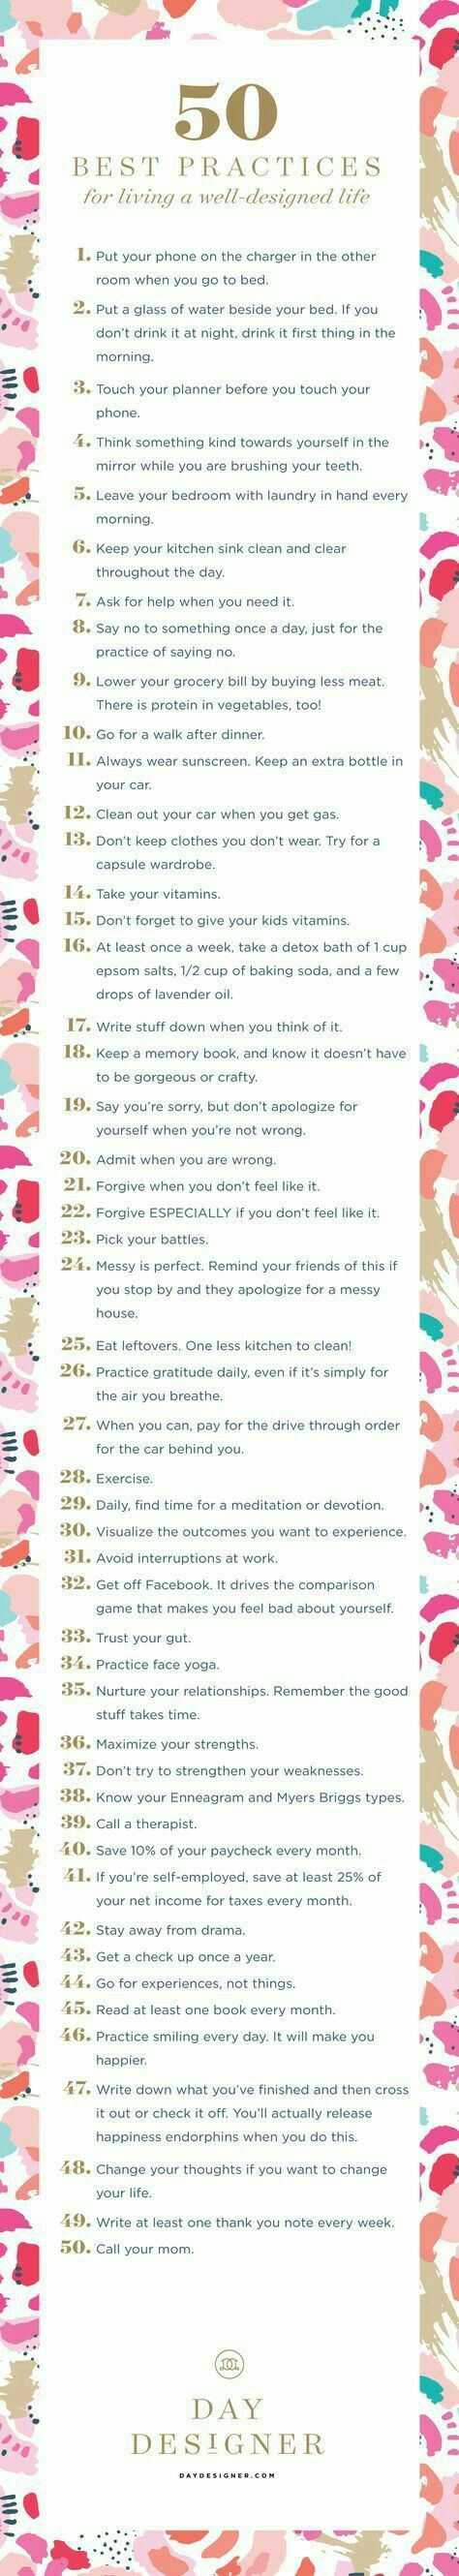 50 best practices for living a well designed life.